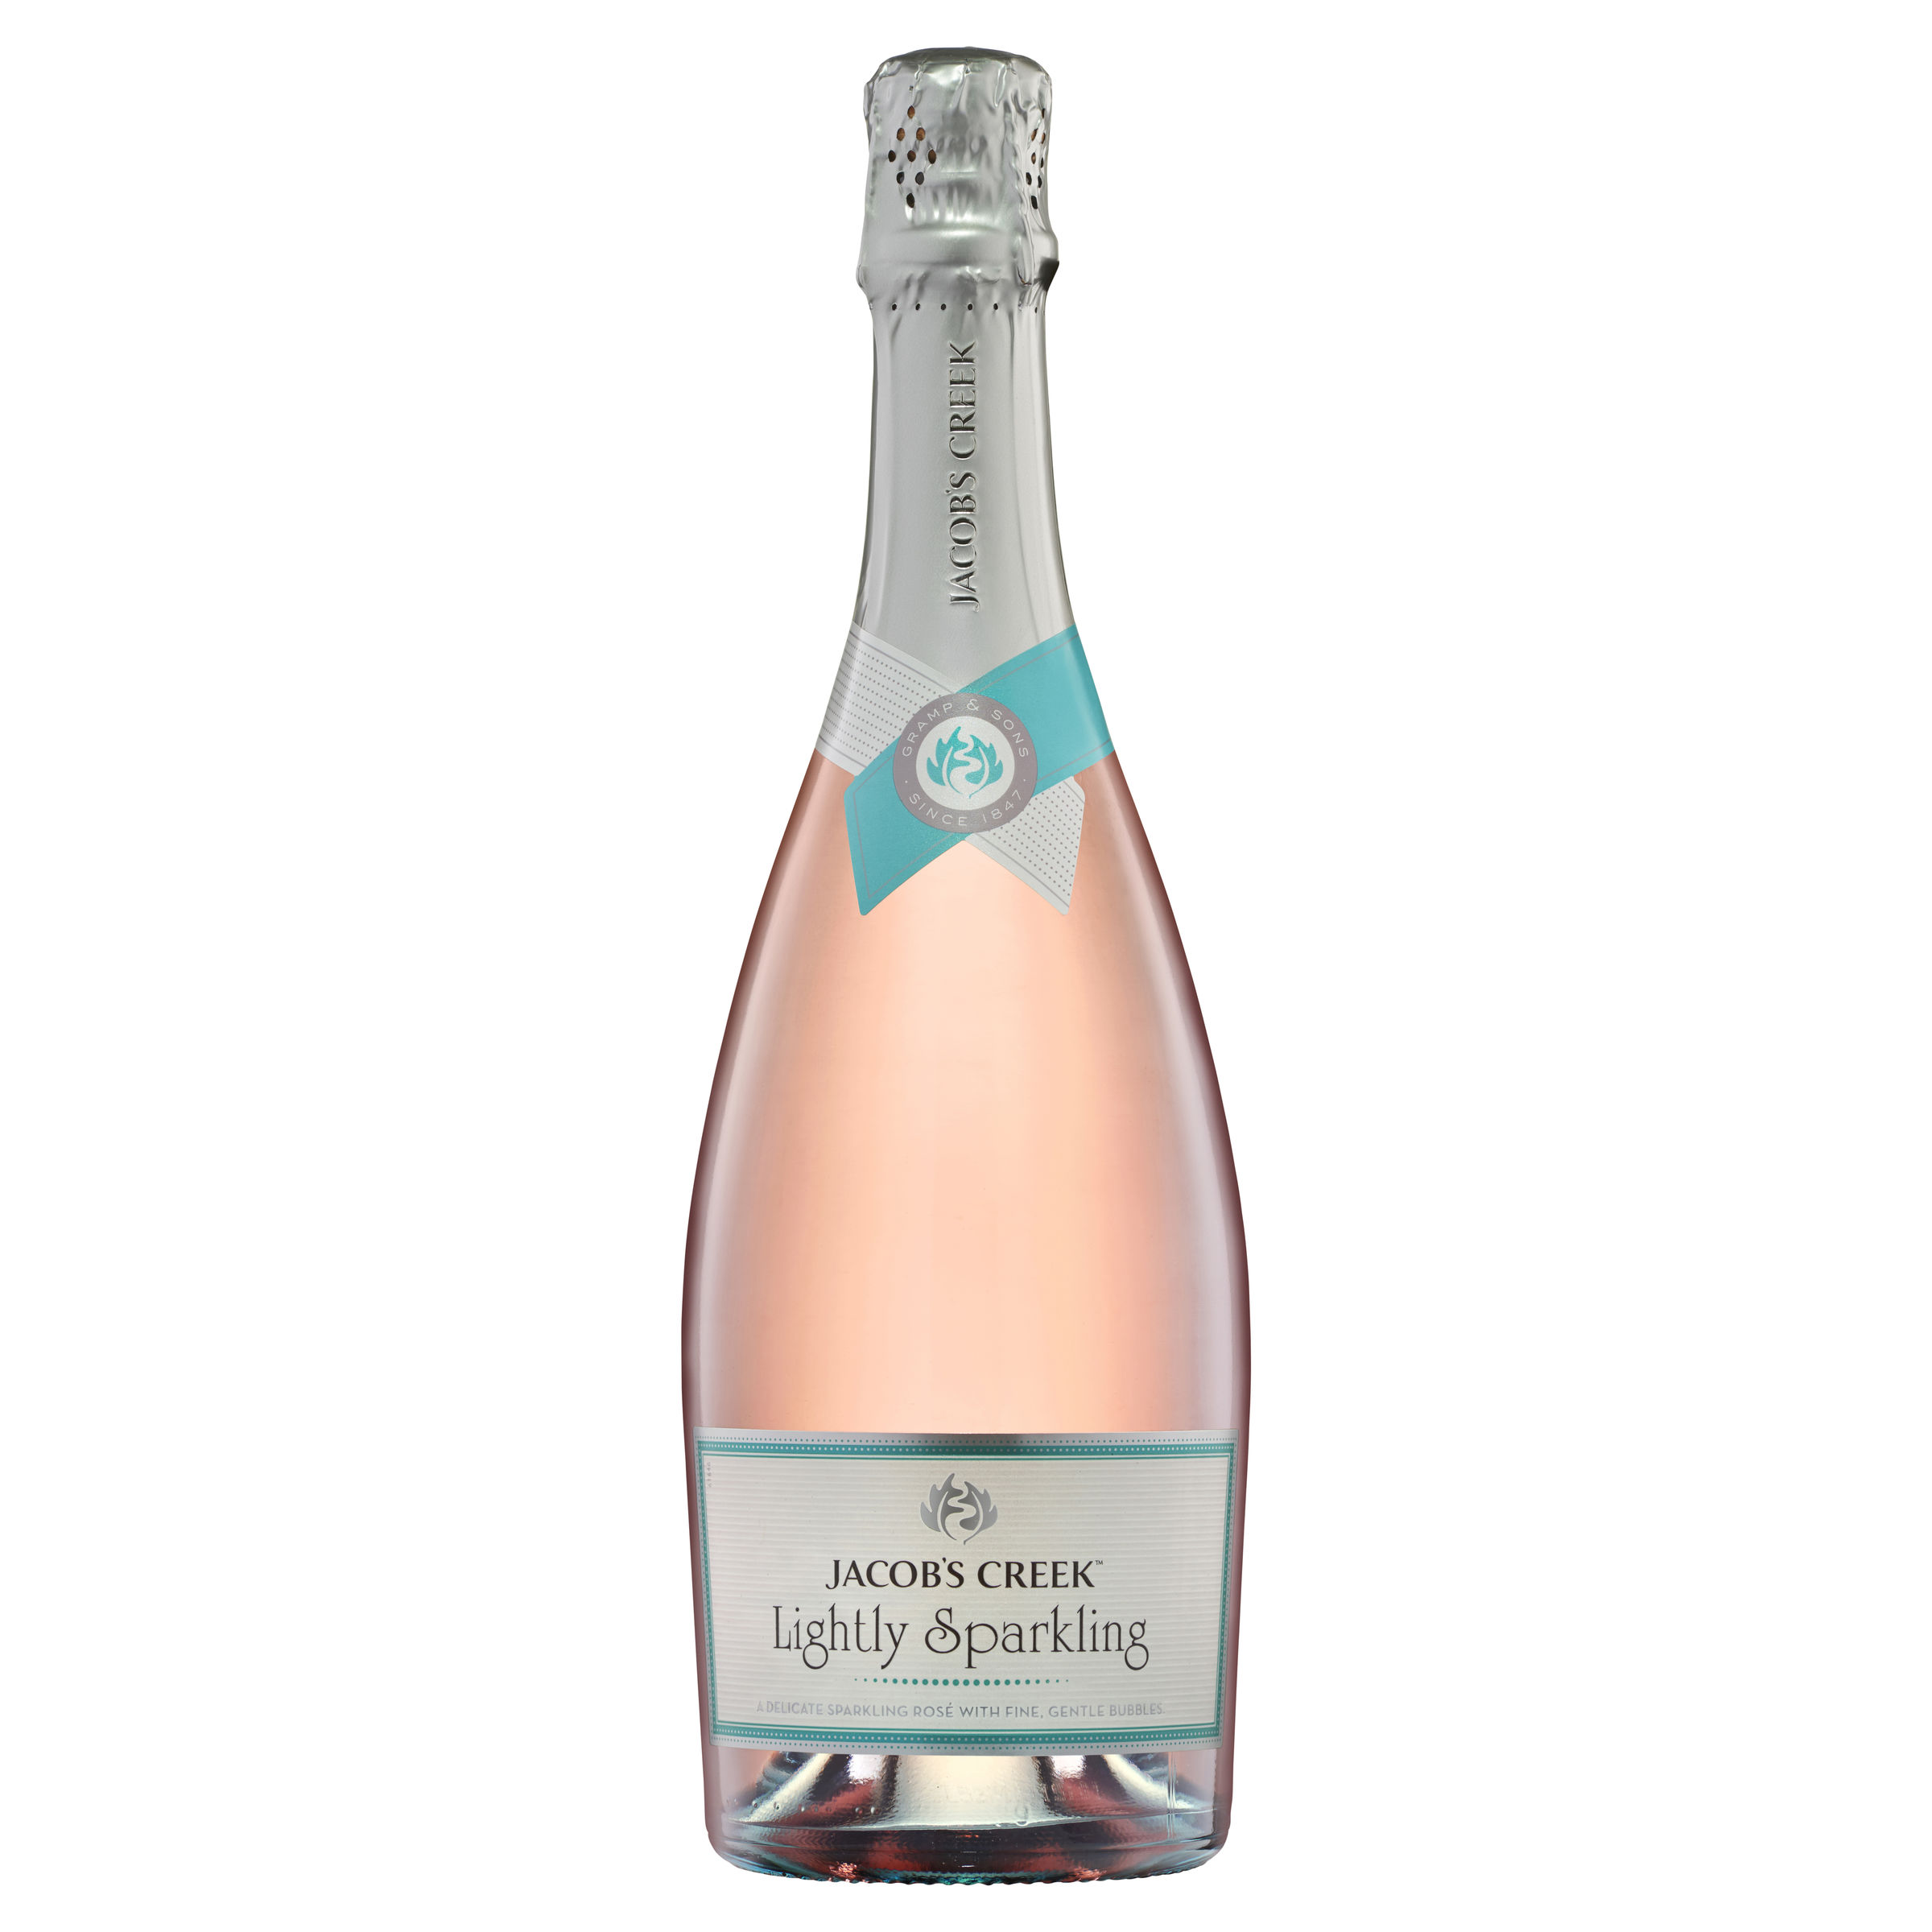 JACOB'S CREEK LIGHTLY SPARKLING ROSE